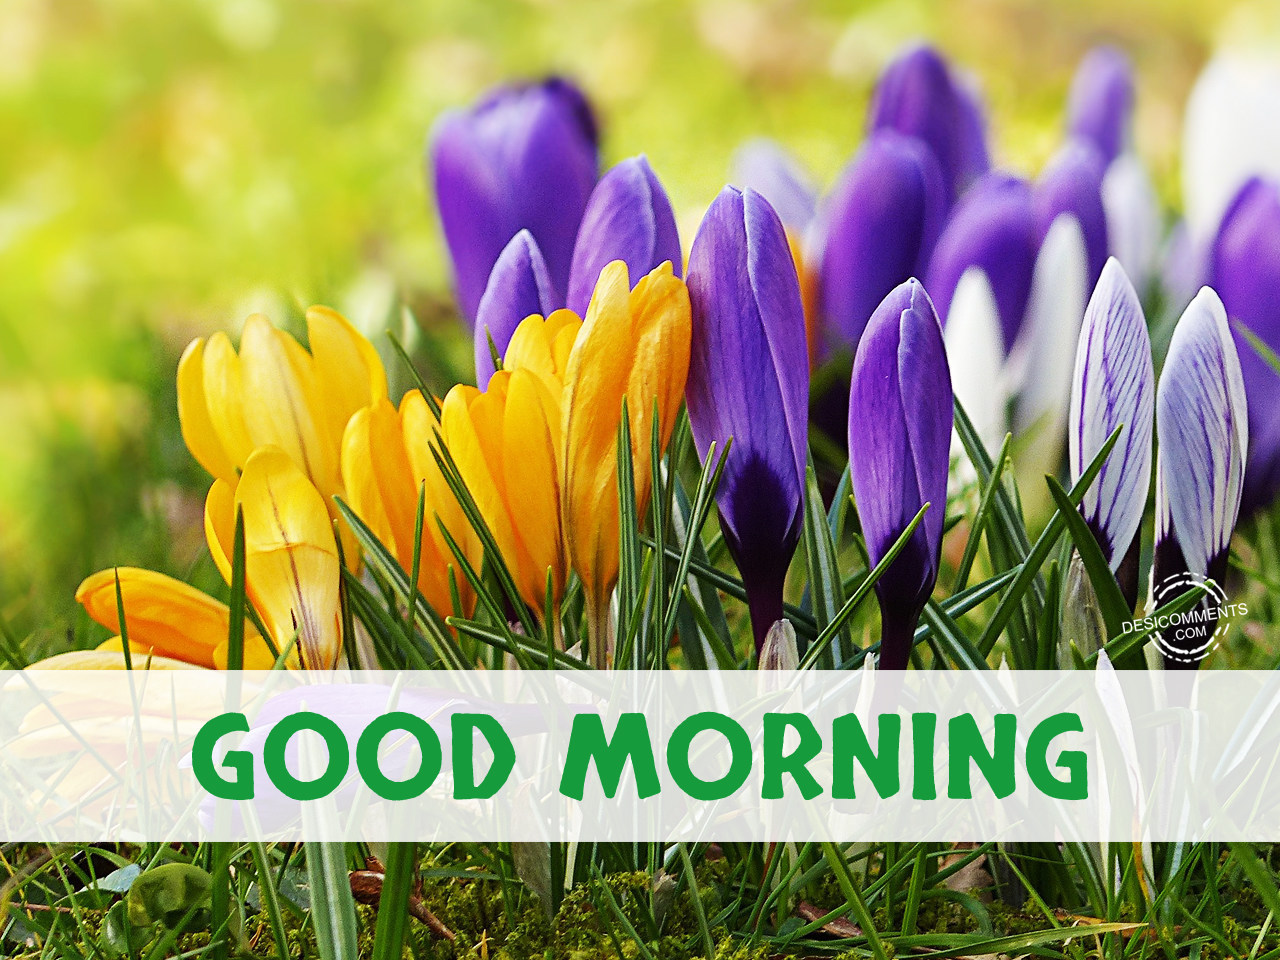 Good Morning Pictures, Images, Graphics for Facebook ...